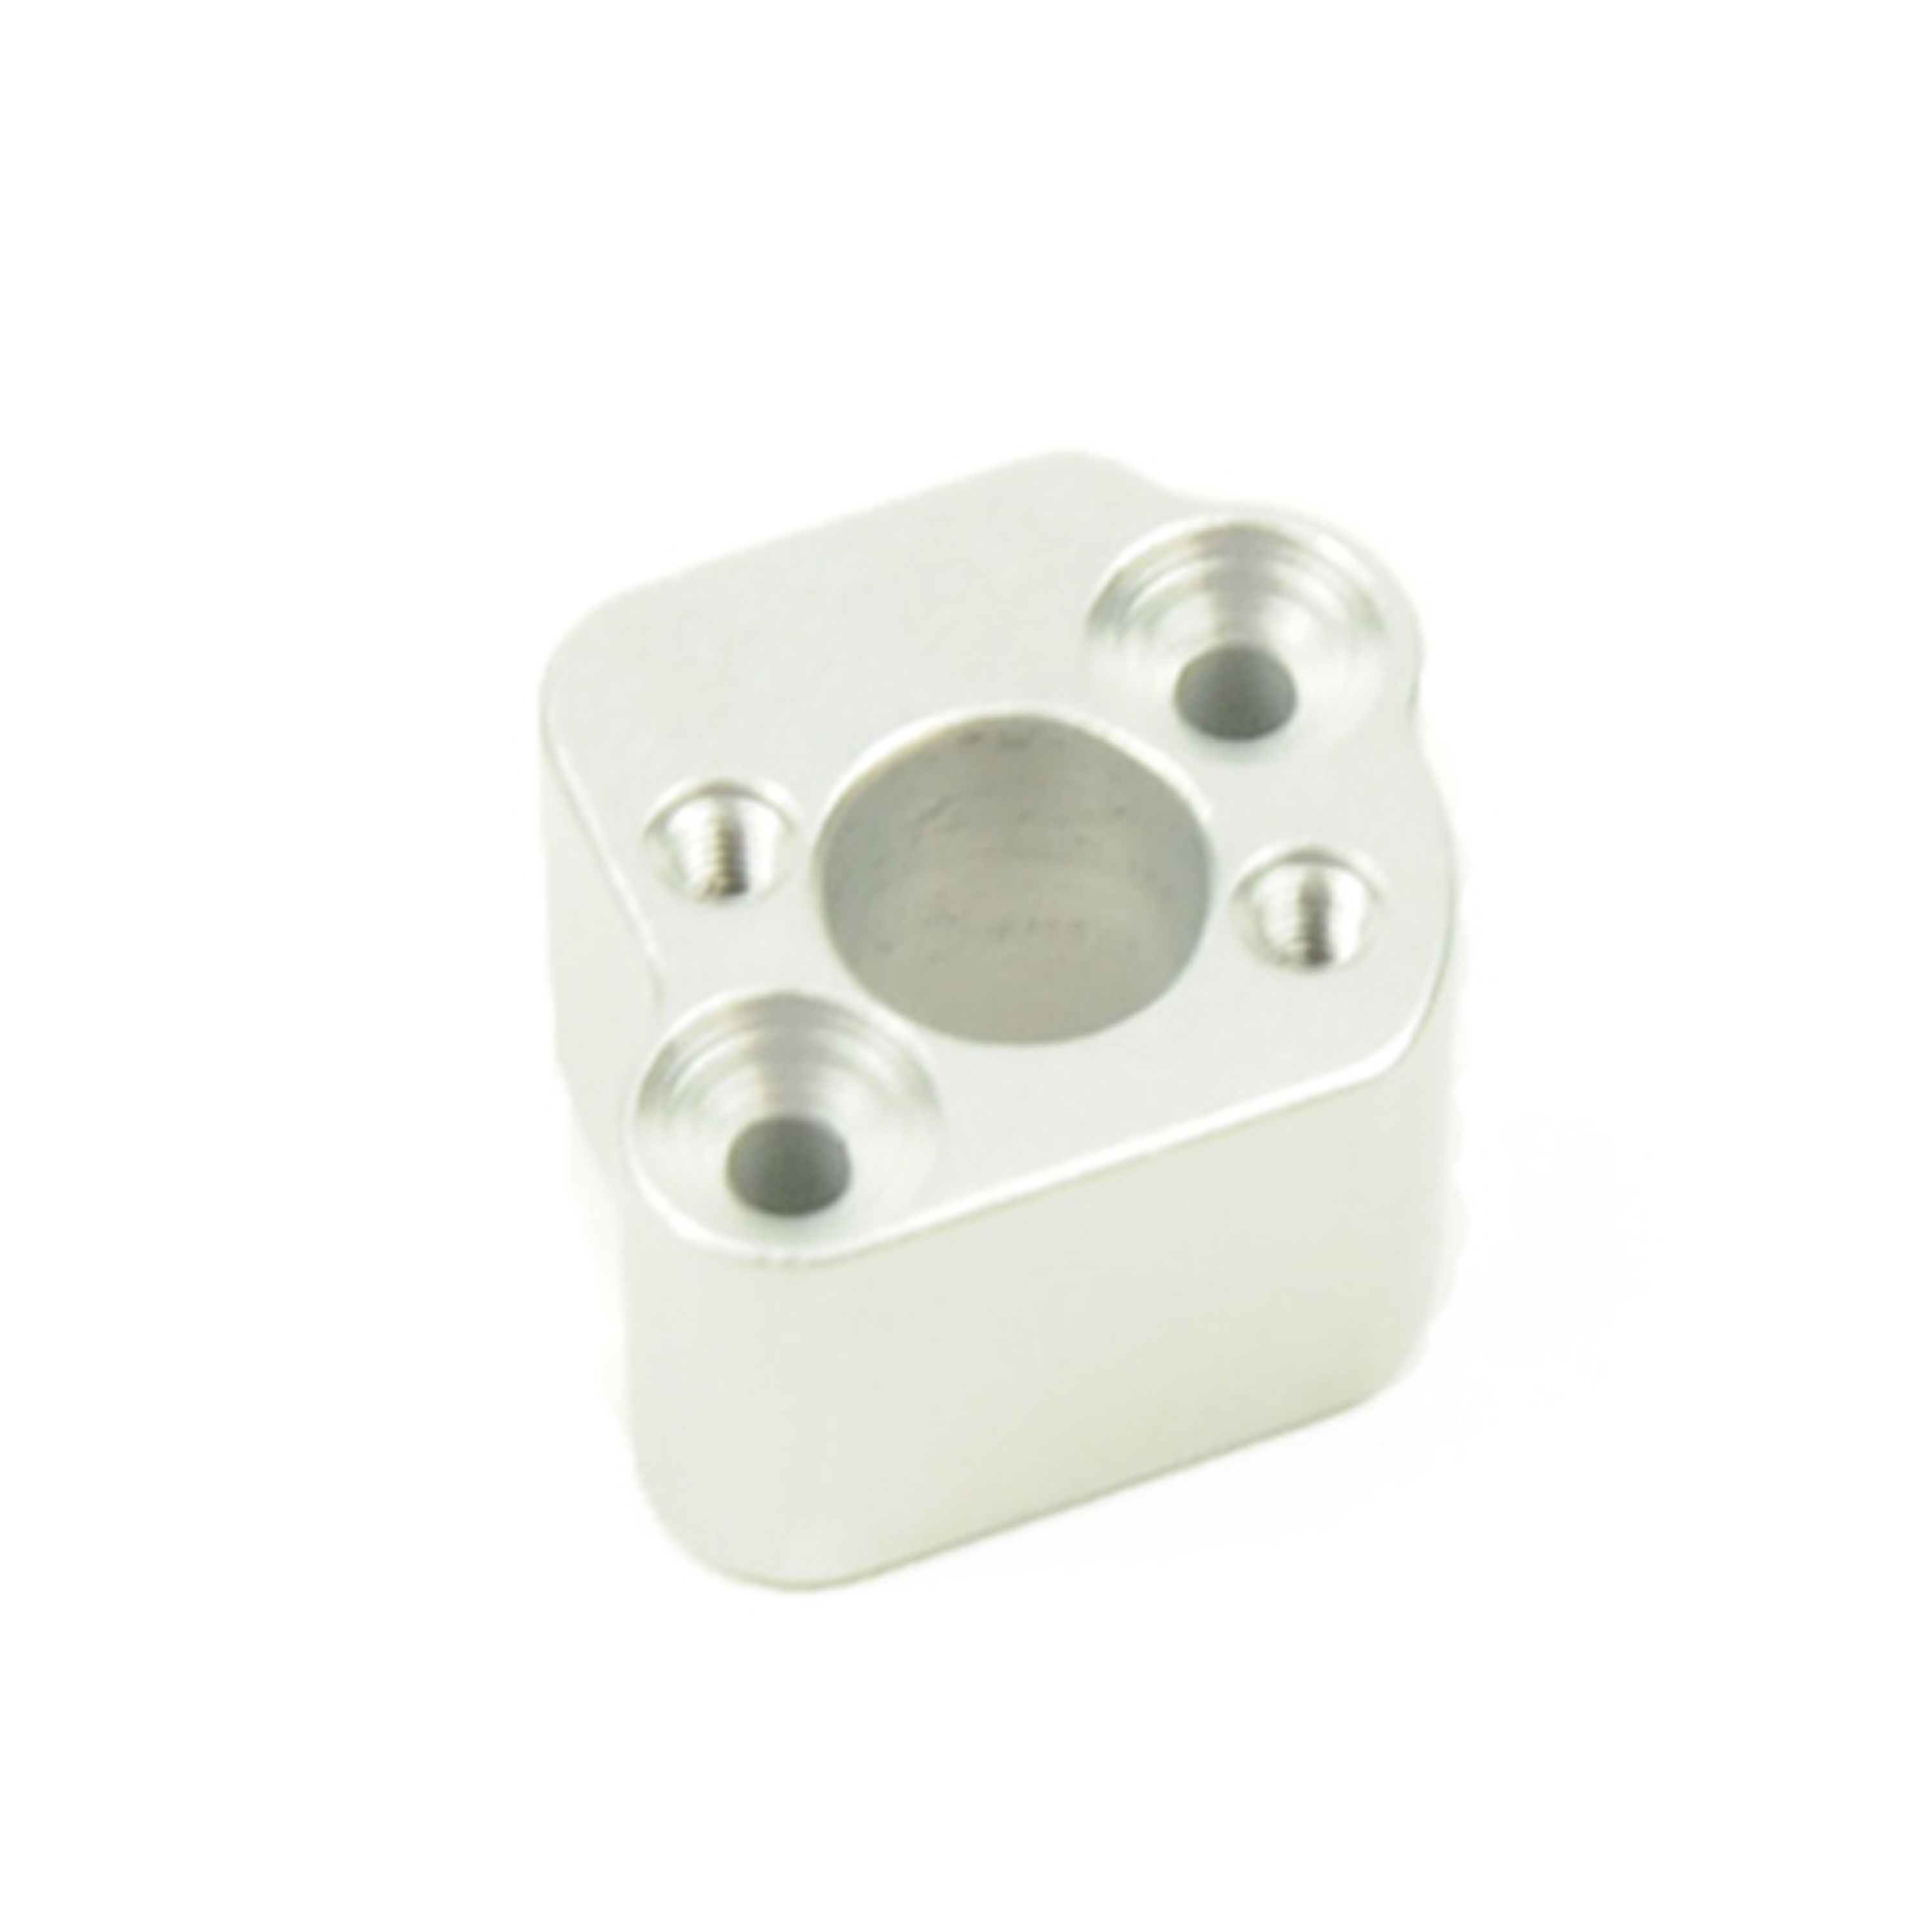 Panda Hobby Alloy Motor Adaptor Fits Tetral8 (X and K Series)